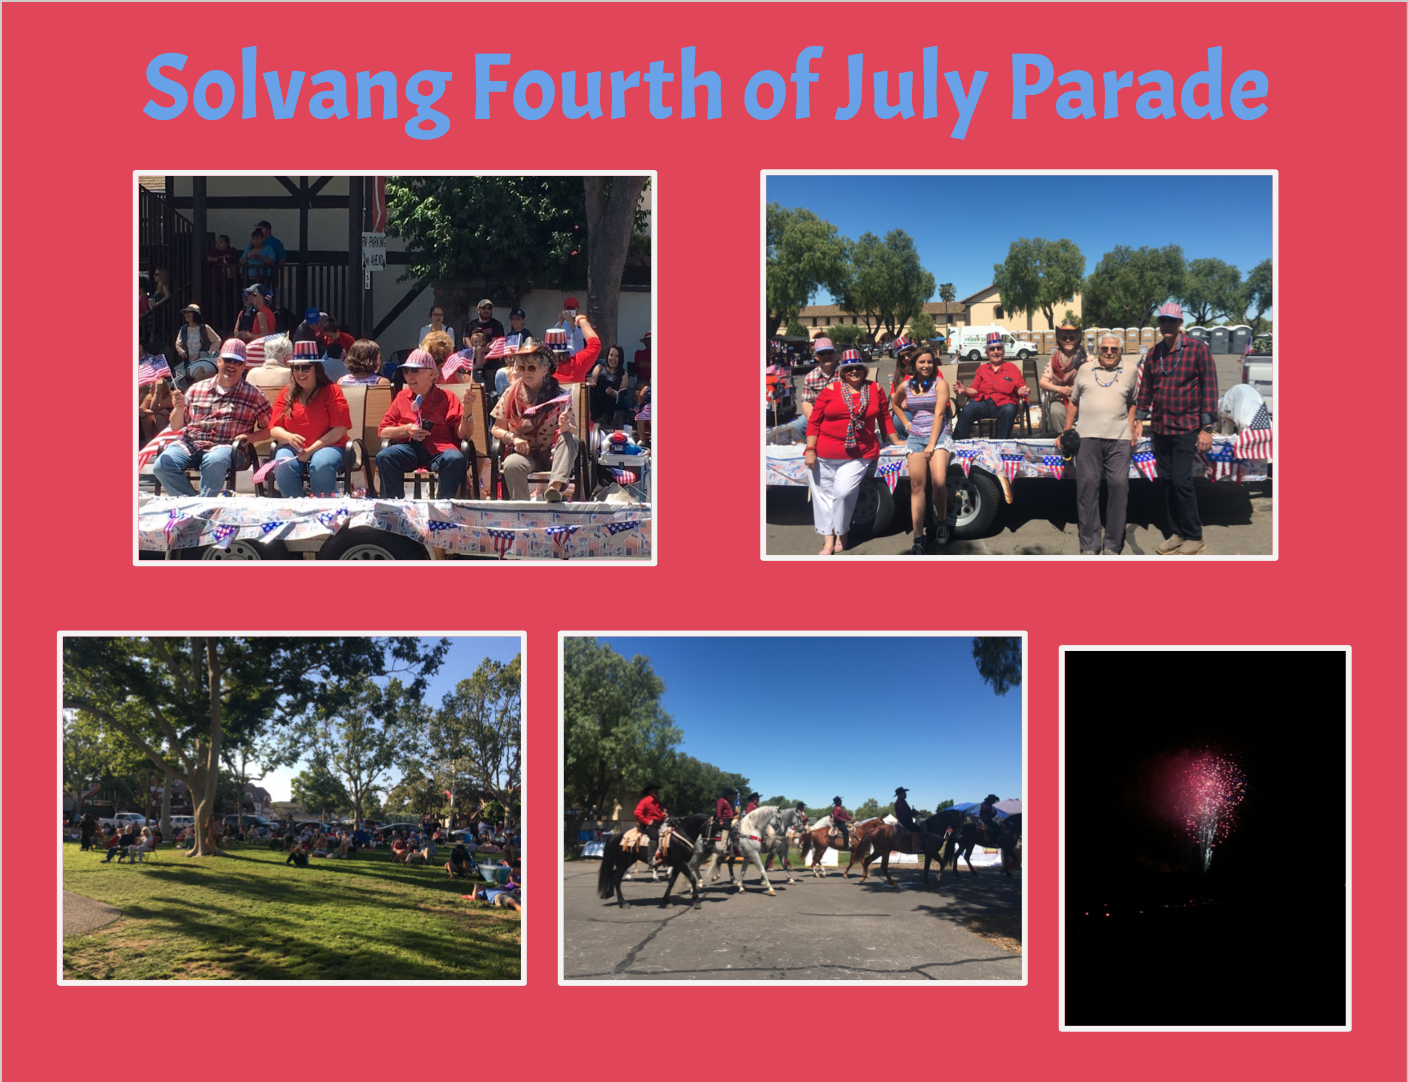 Solvang Fourth of July Parade